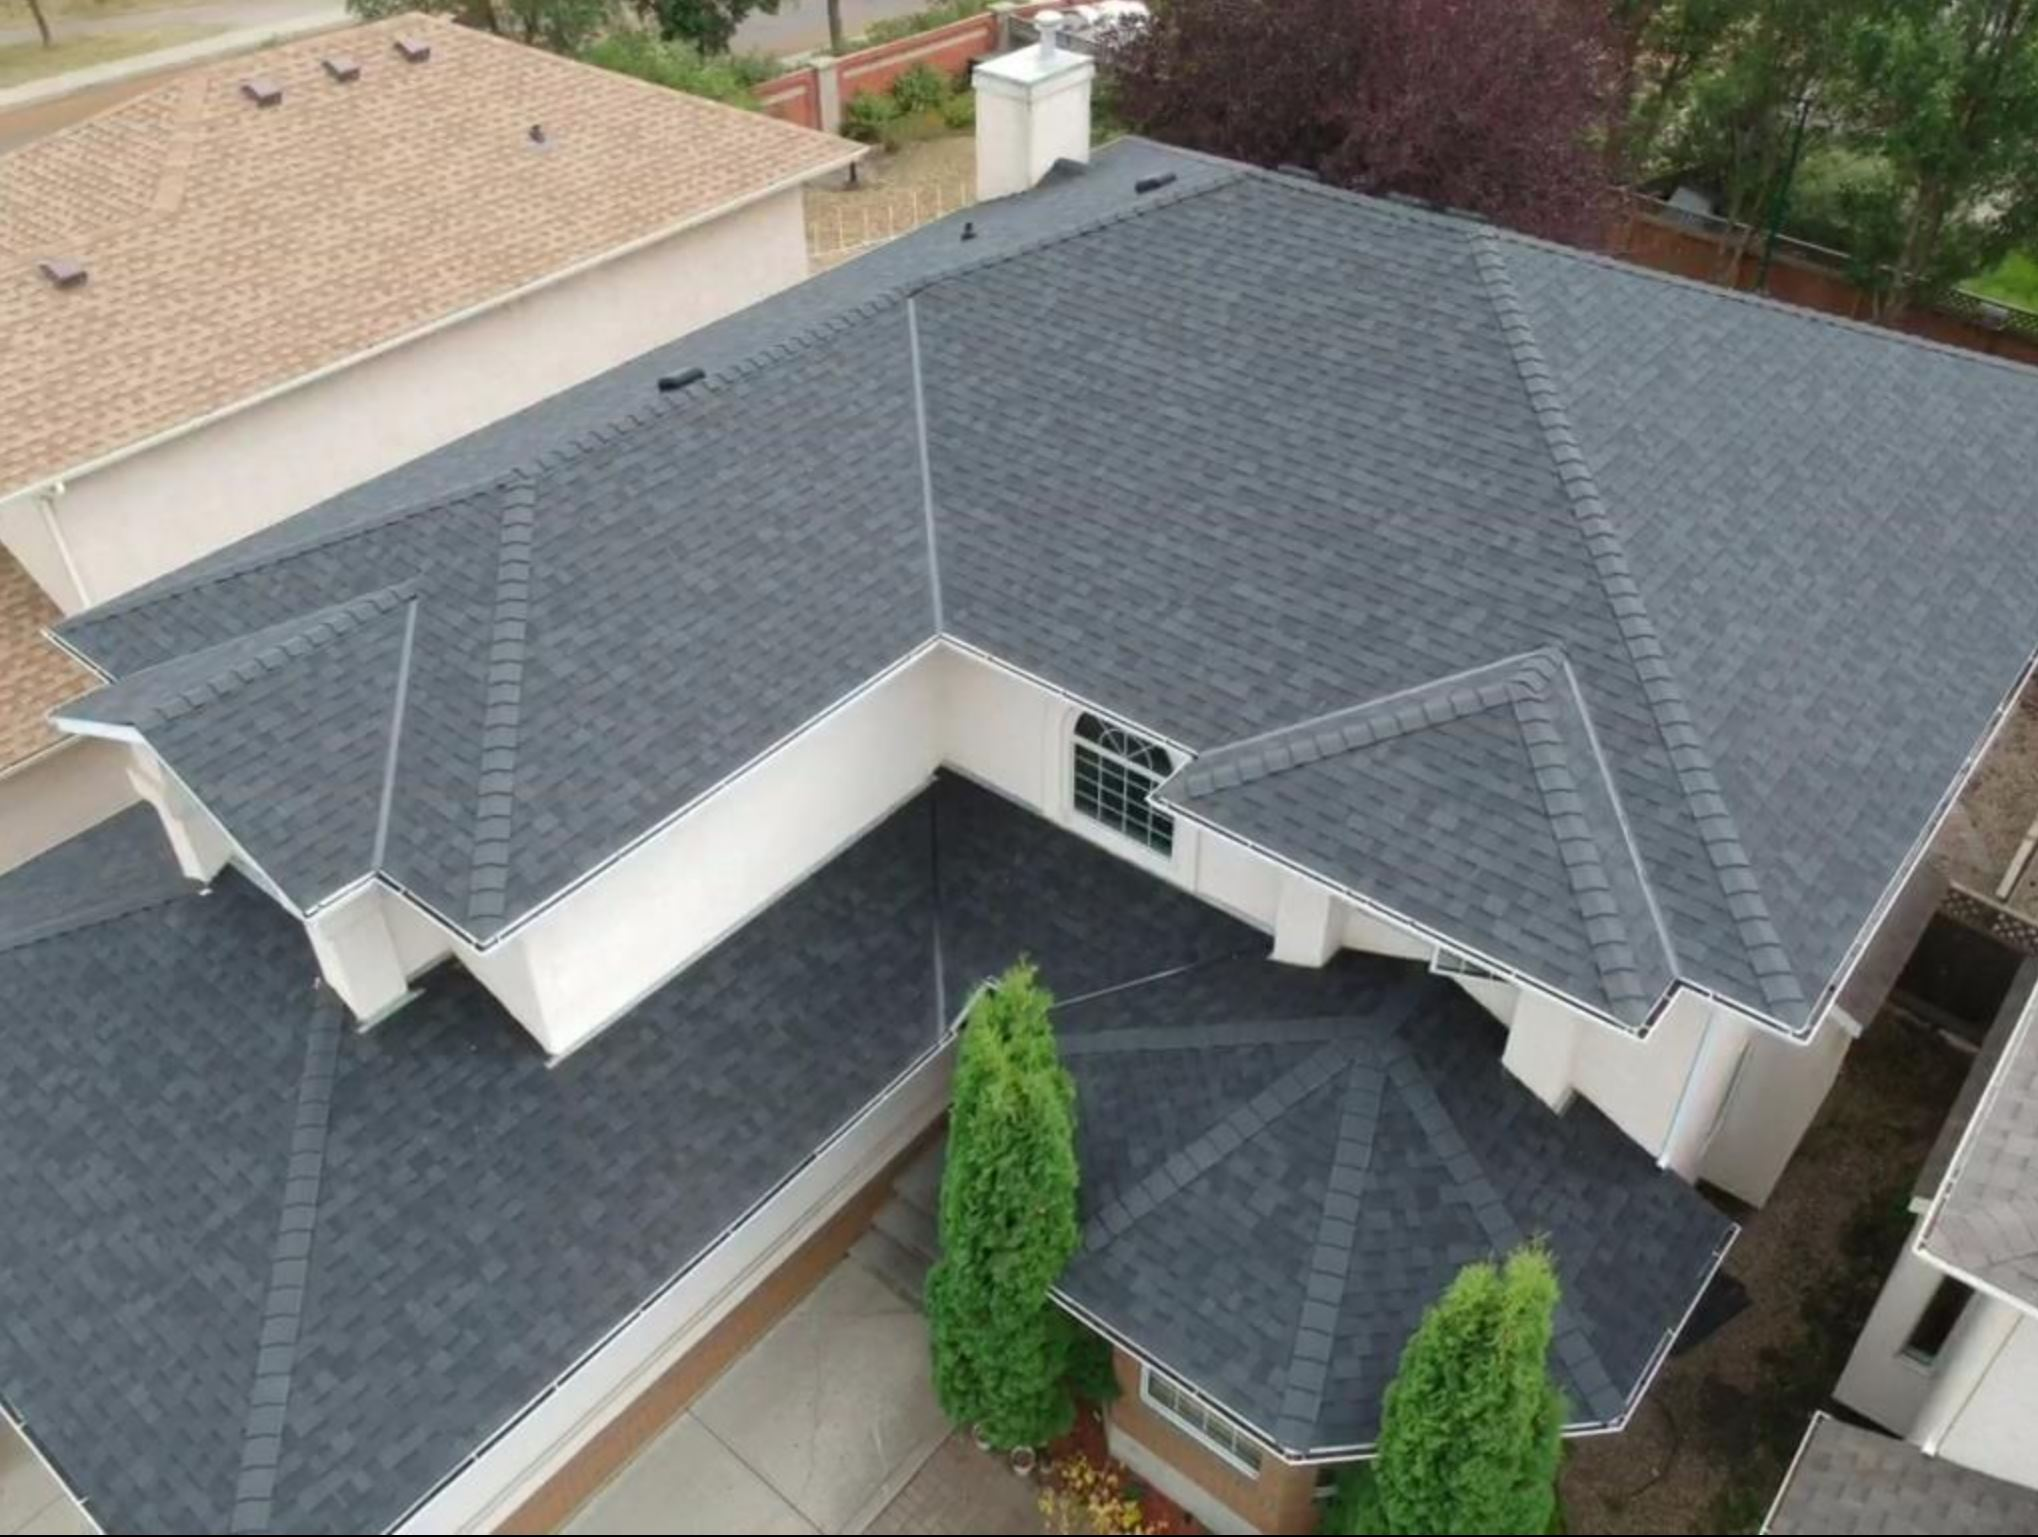 Best Roofing Company in Regina - Image 3